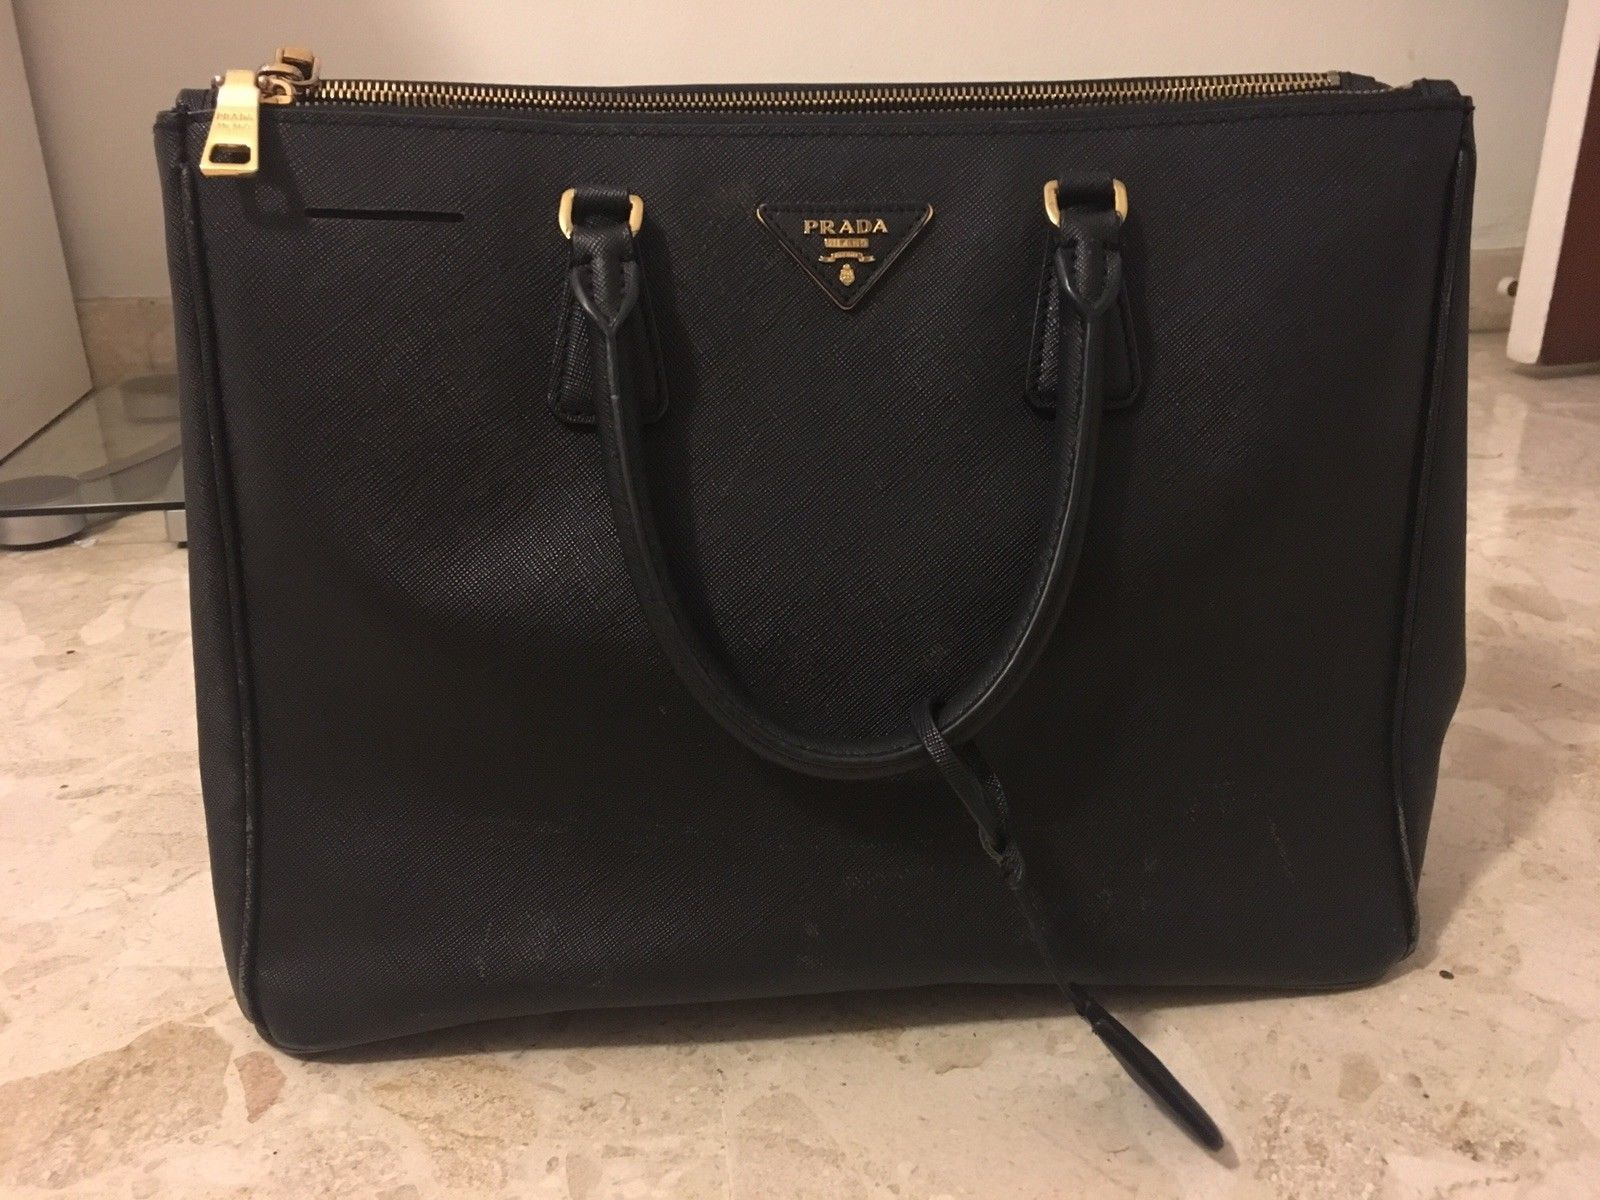 7832e03169 PRADA Saffiano Leather Double Zip Lux Medium Black Totes bag  395.0 ...